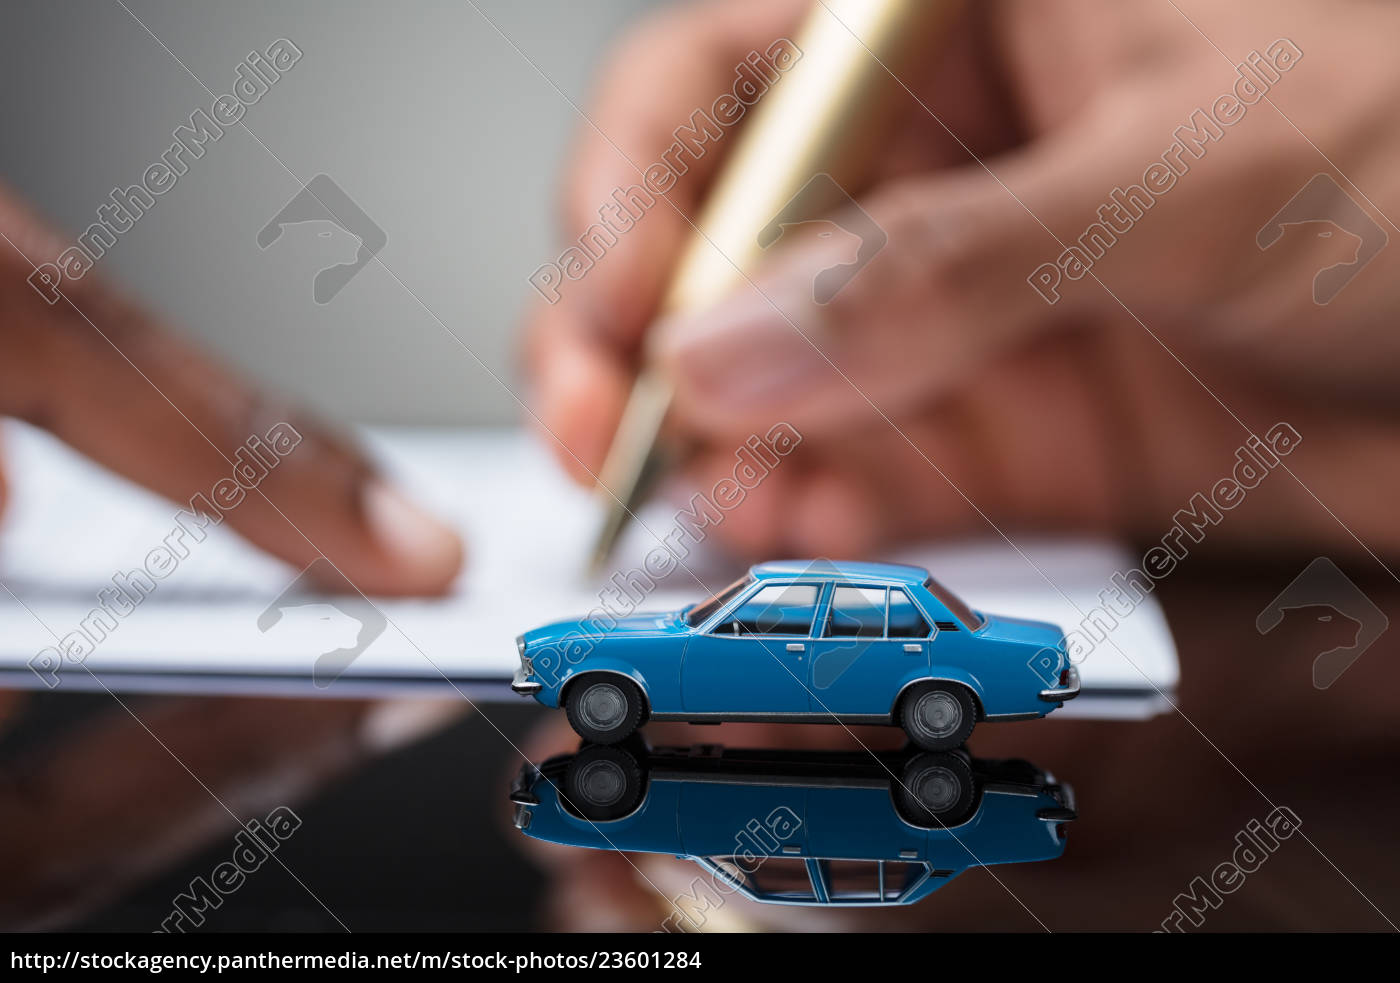 person's, hand, signing, car, loan, agreement - 23601284